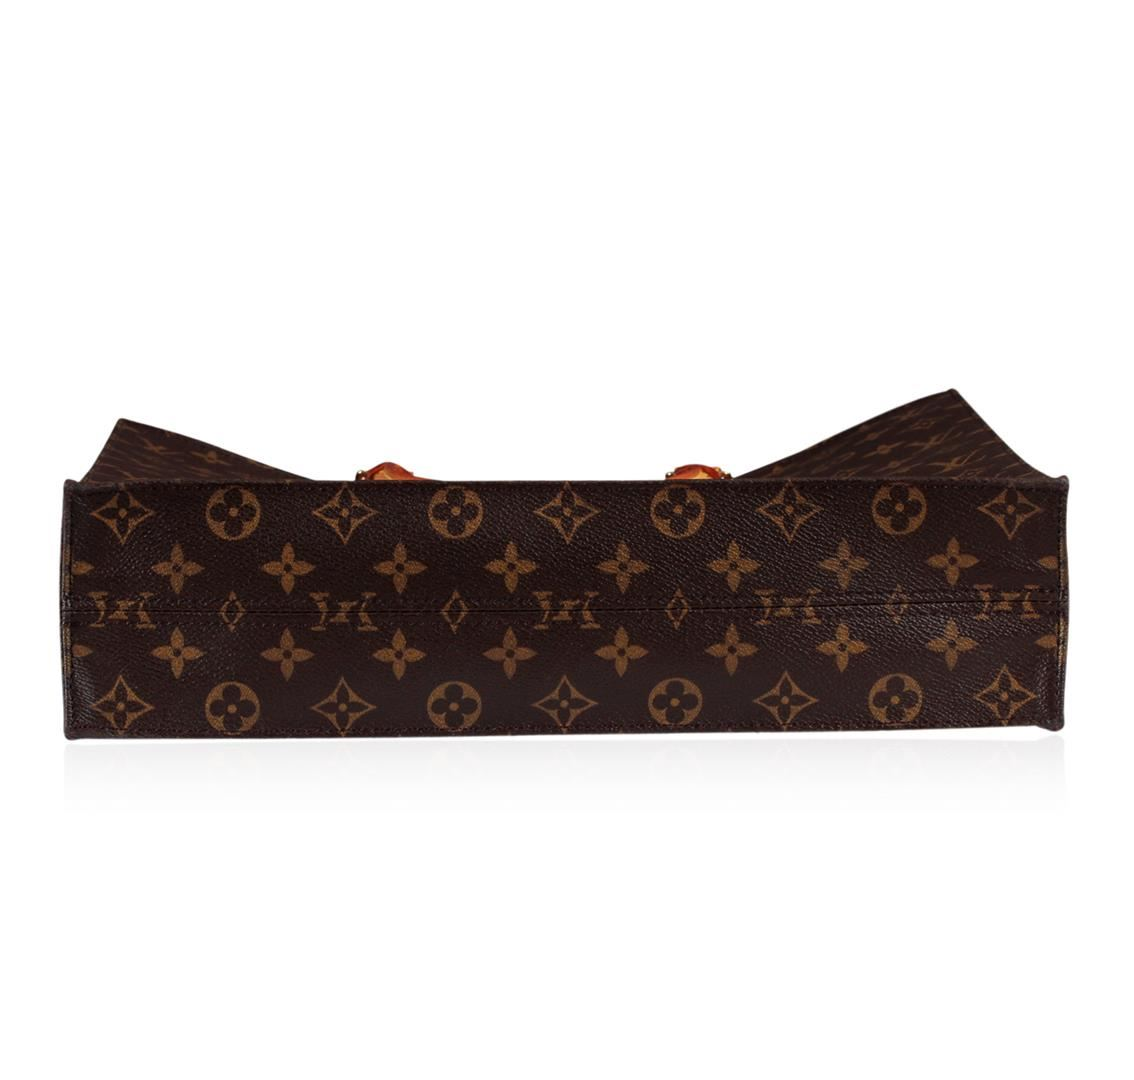 ... Image 4   Louis Vuitton Sac Plat NM Monogram Canvas ... 74b3e5ebec6